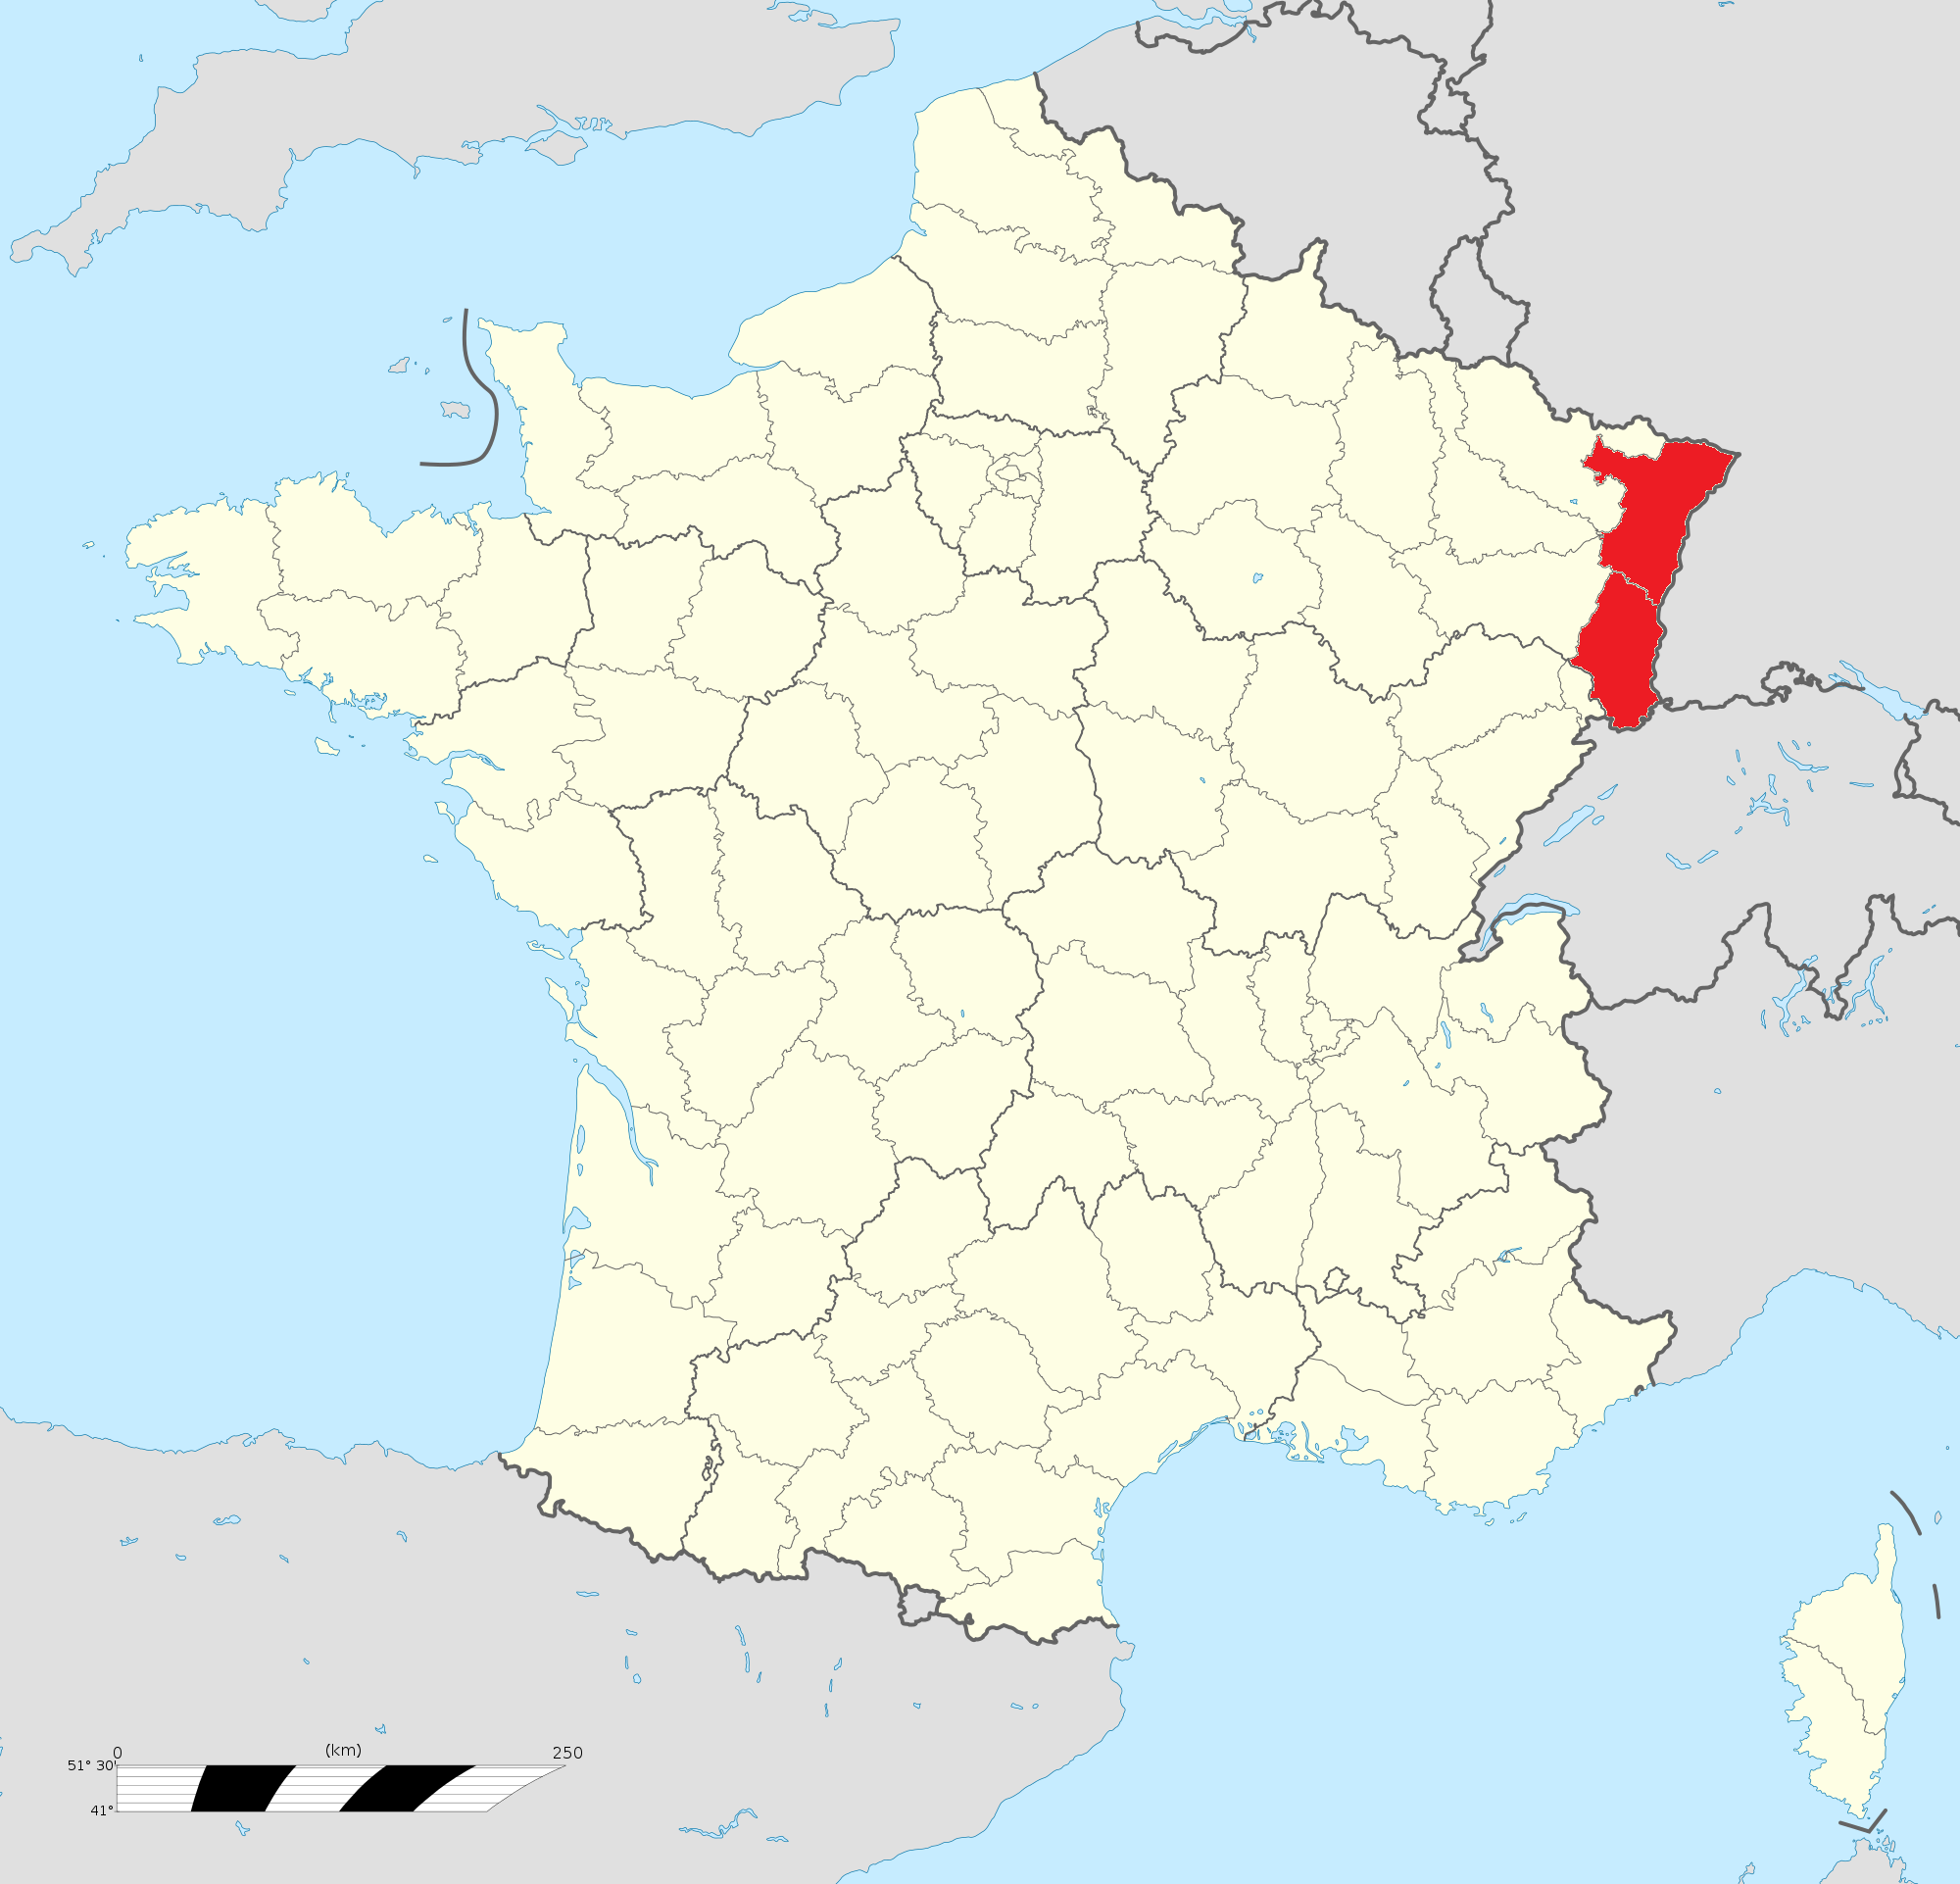 Carte Lalsace.File Carte Alsace 2018 Png Wikimedia Commons